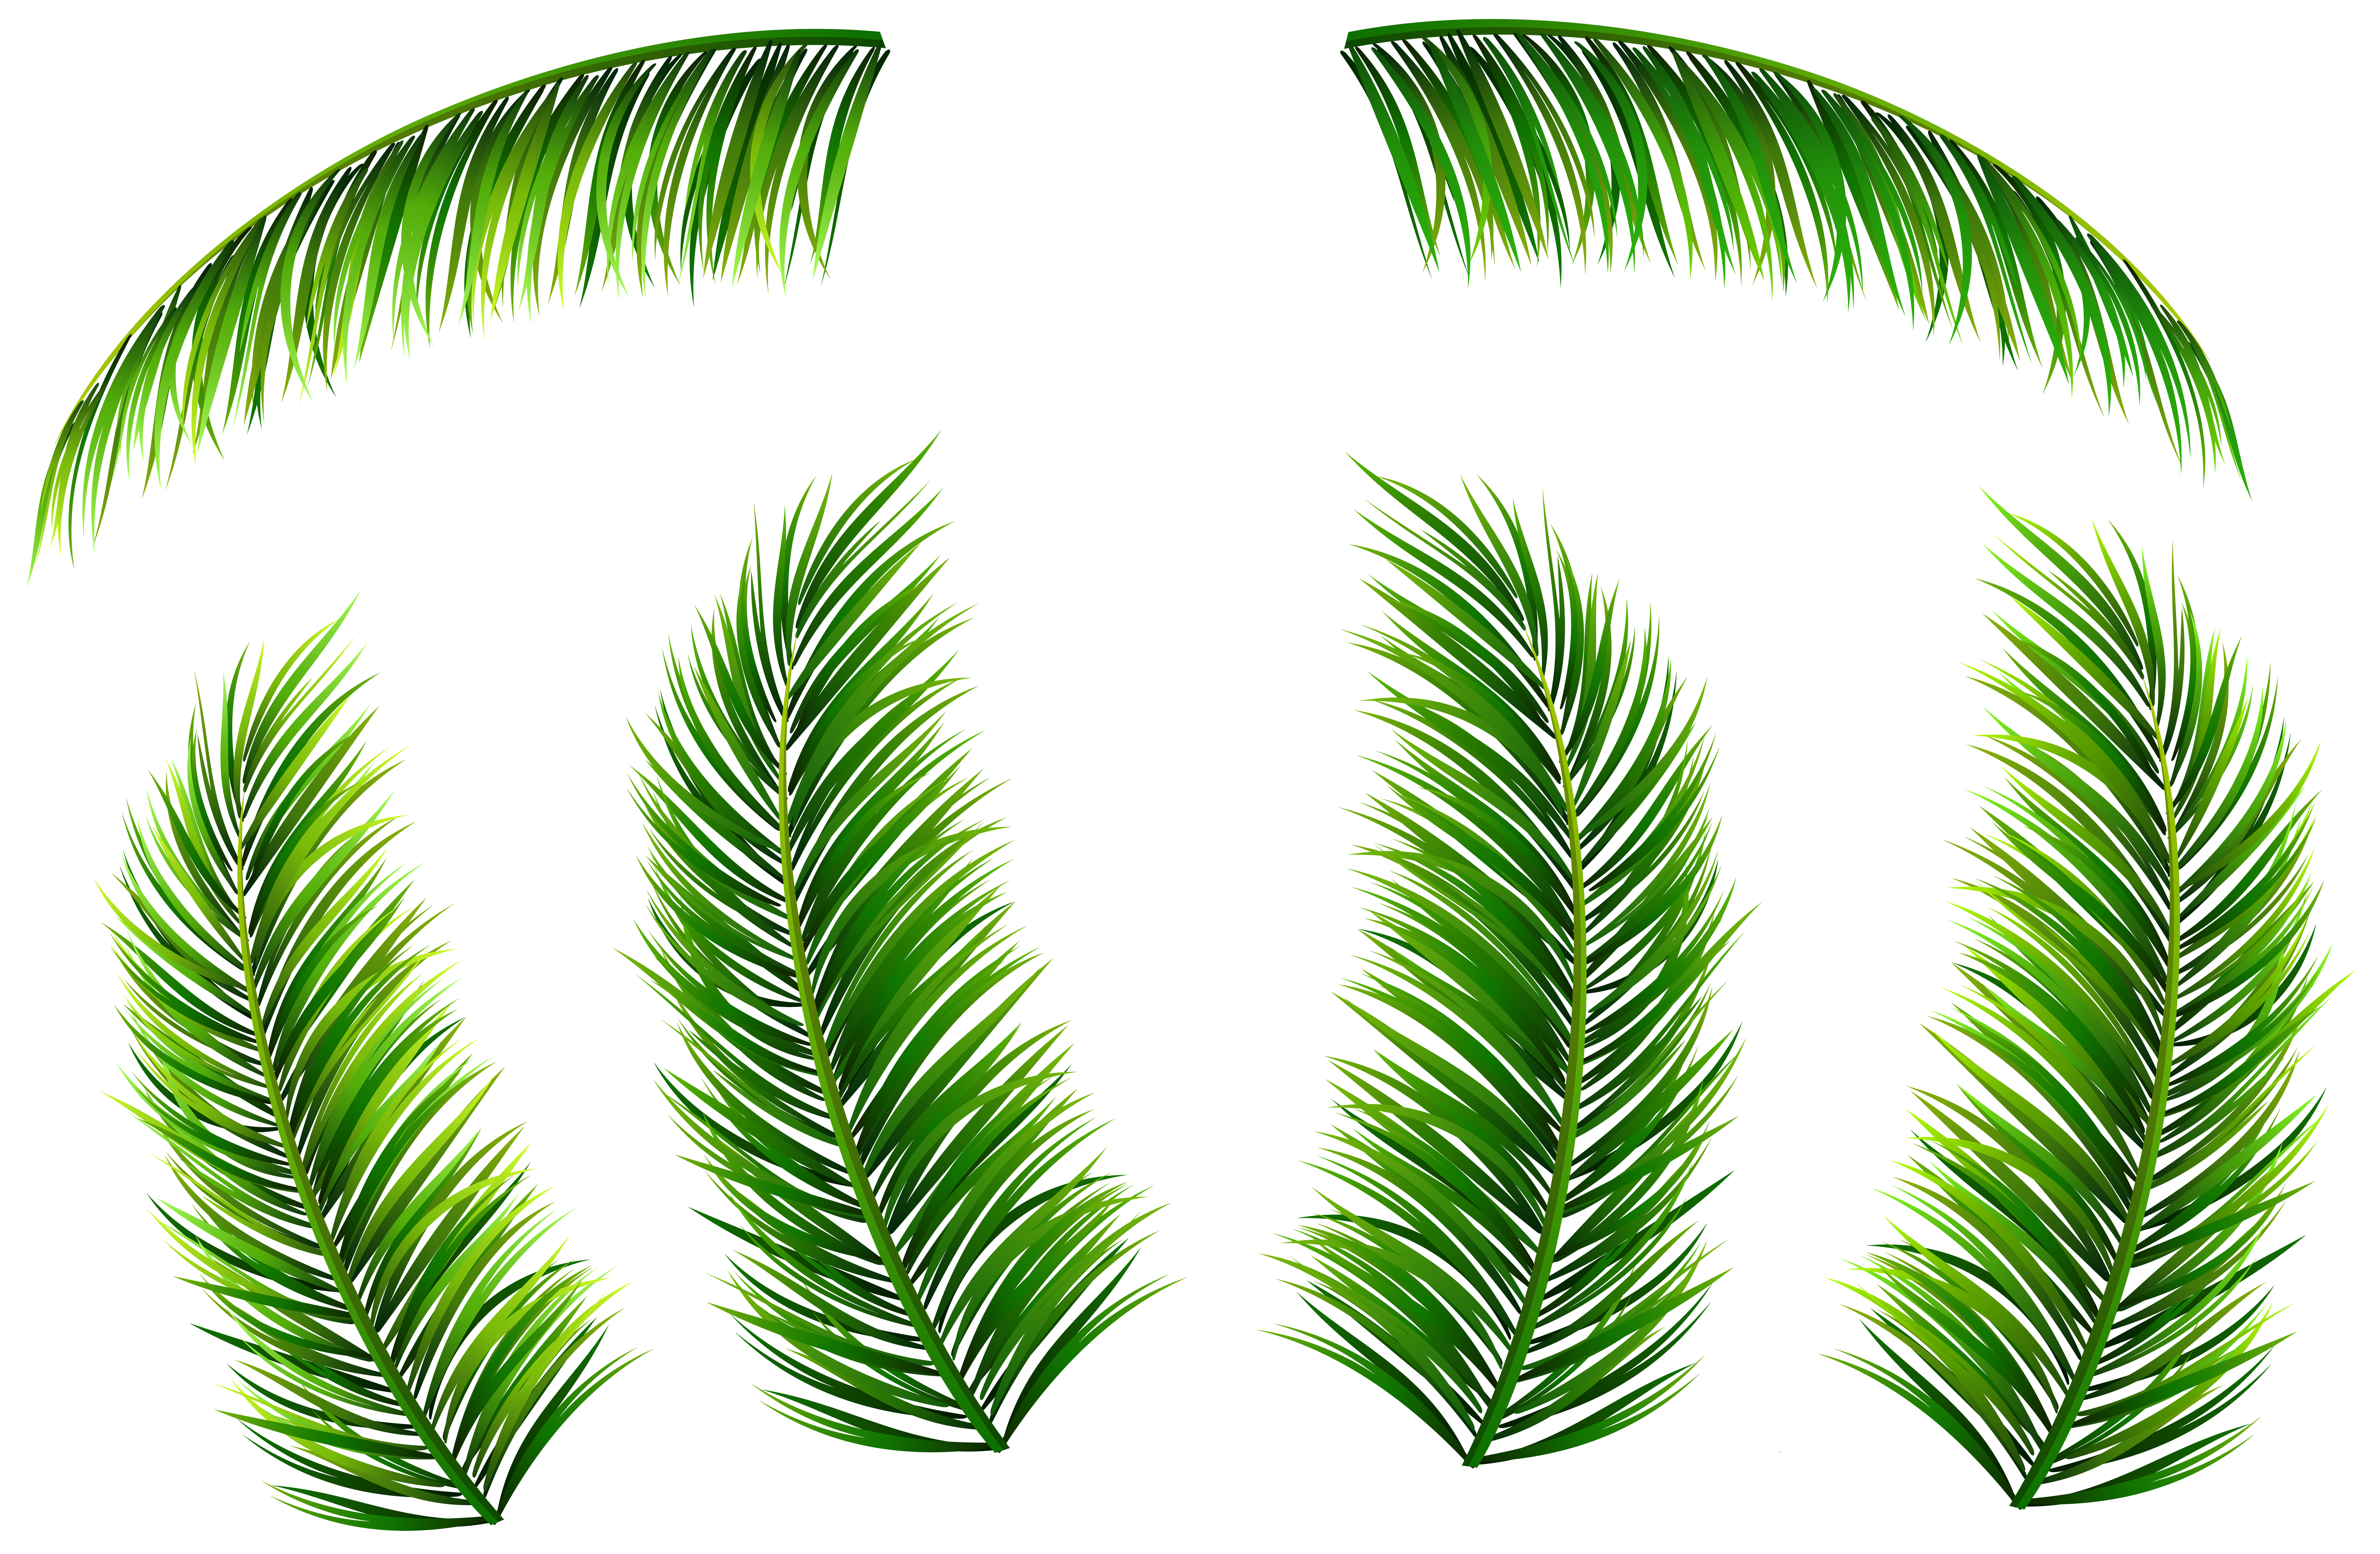 Palm leaves clipart #4